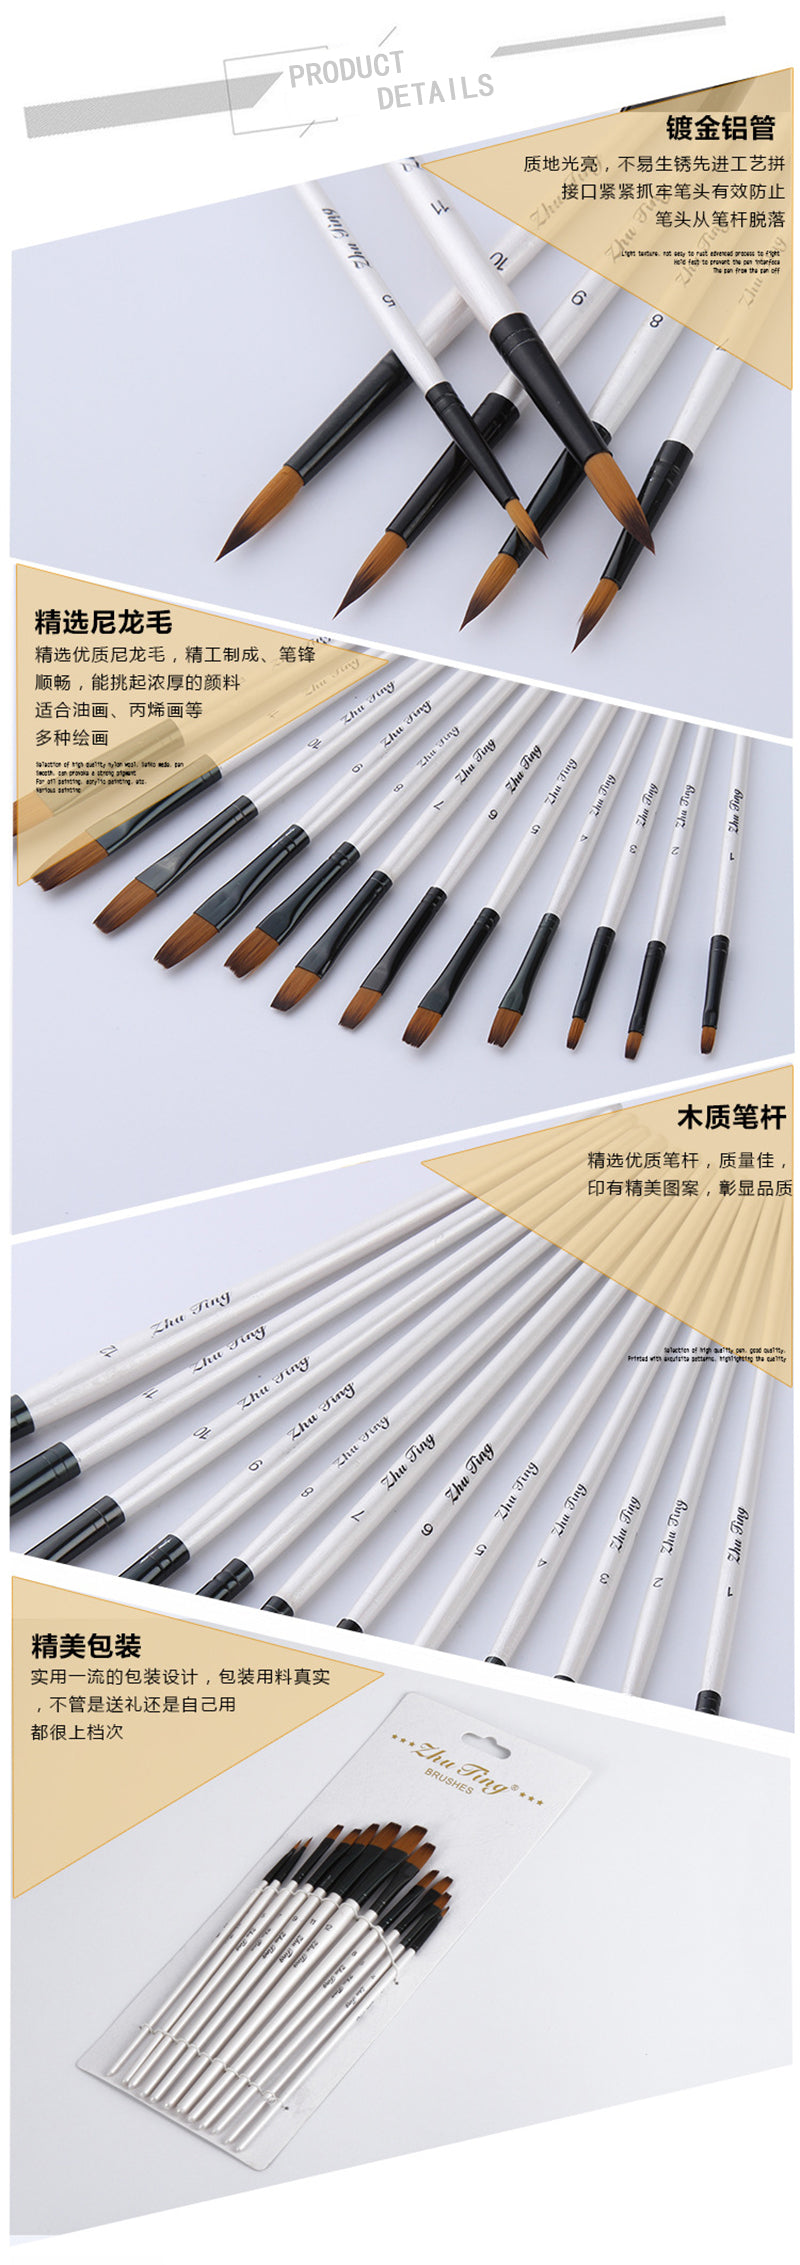 Brookish and Lanky Drawing Brush Set